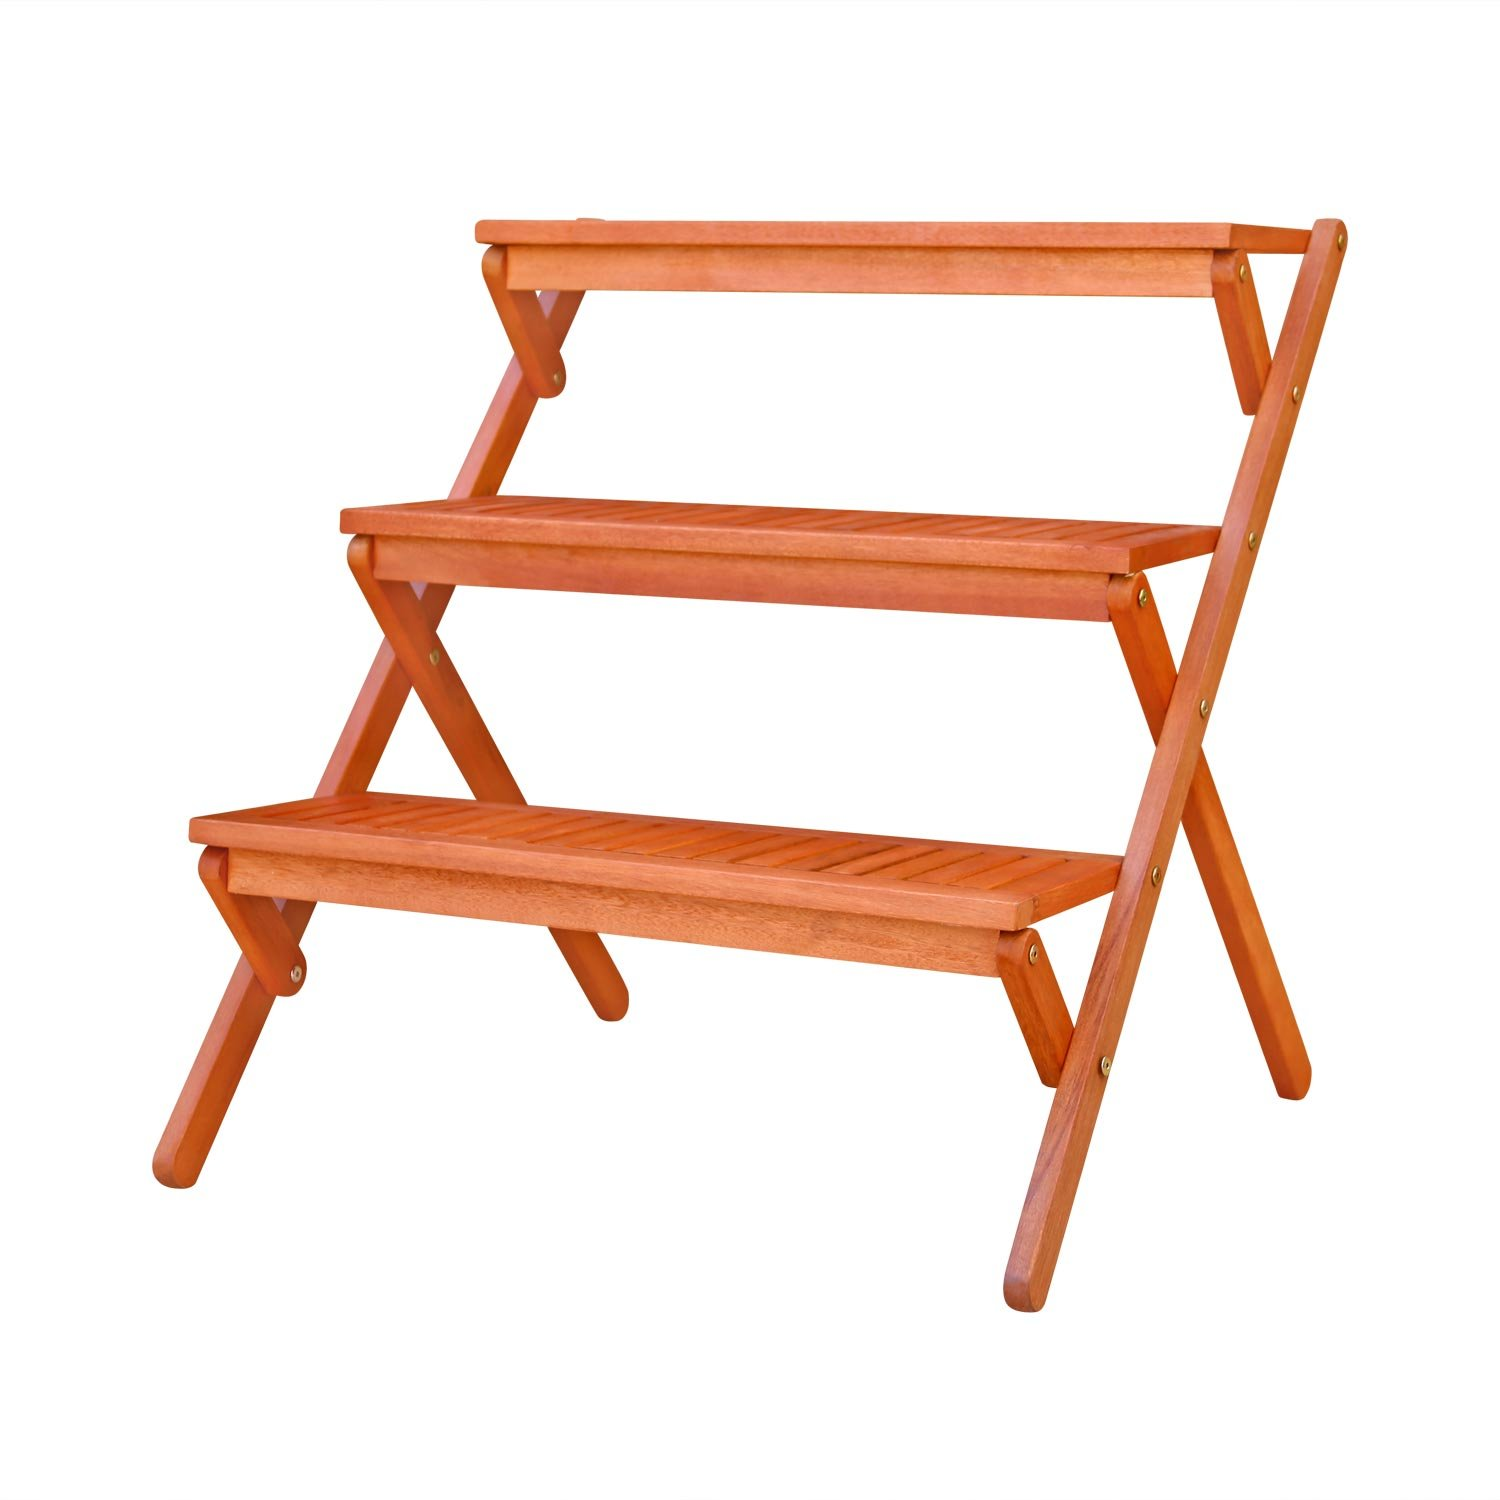 Amazon.com : VIFAH V499 Outdoor Wood Three-Layer Plant Stand ...